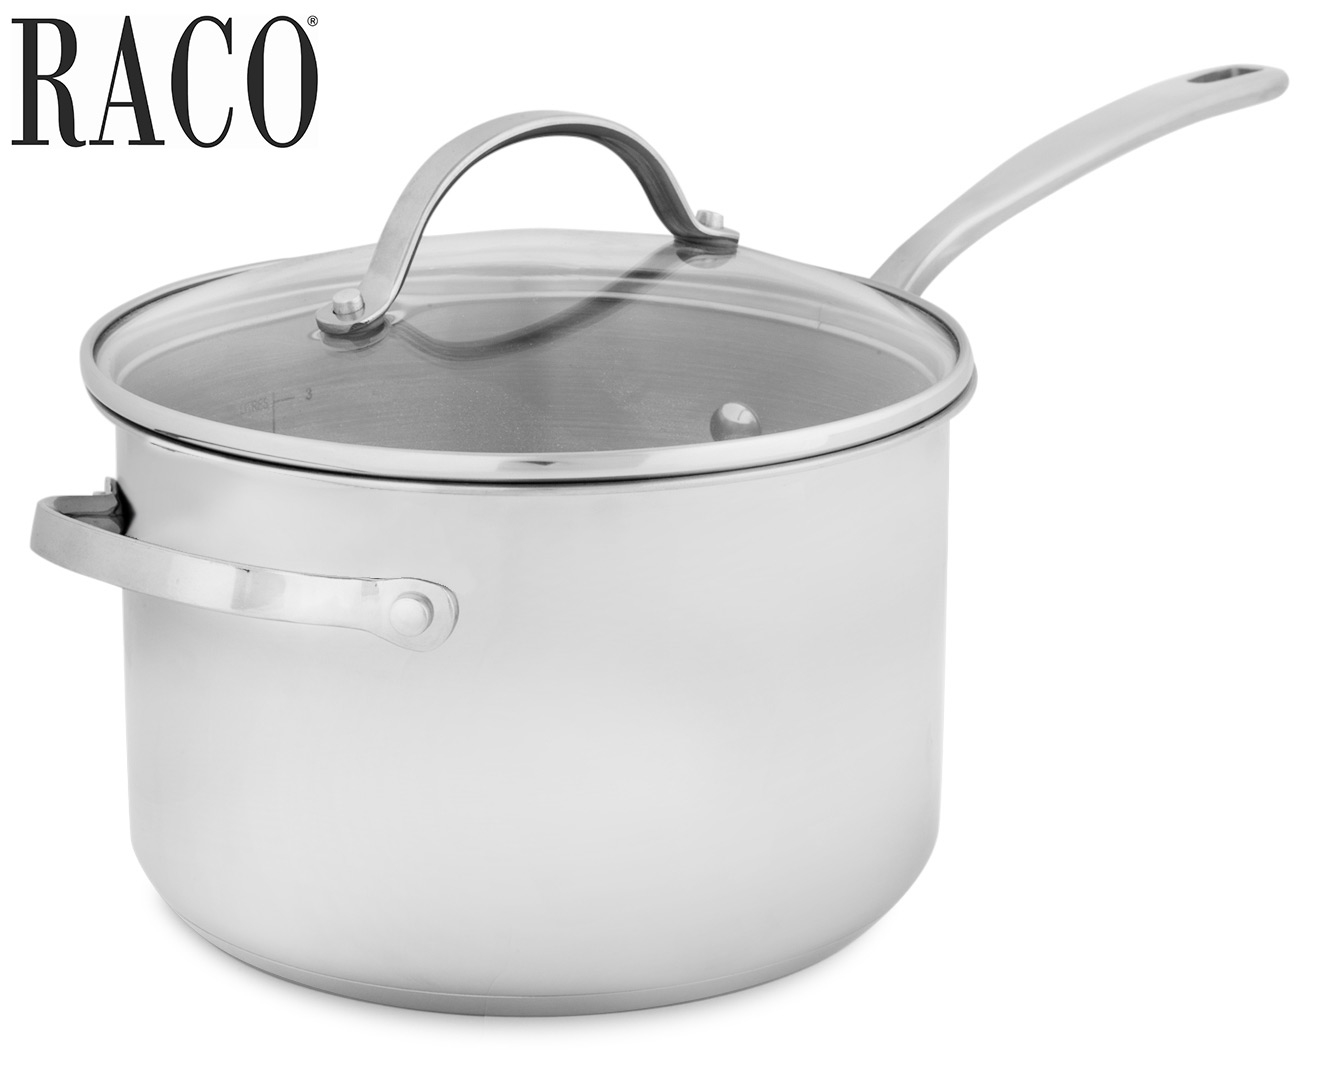 how to clean a burnt raco saucepan